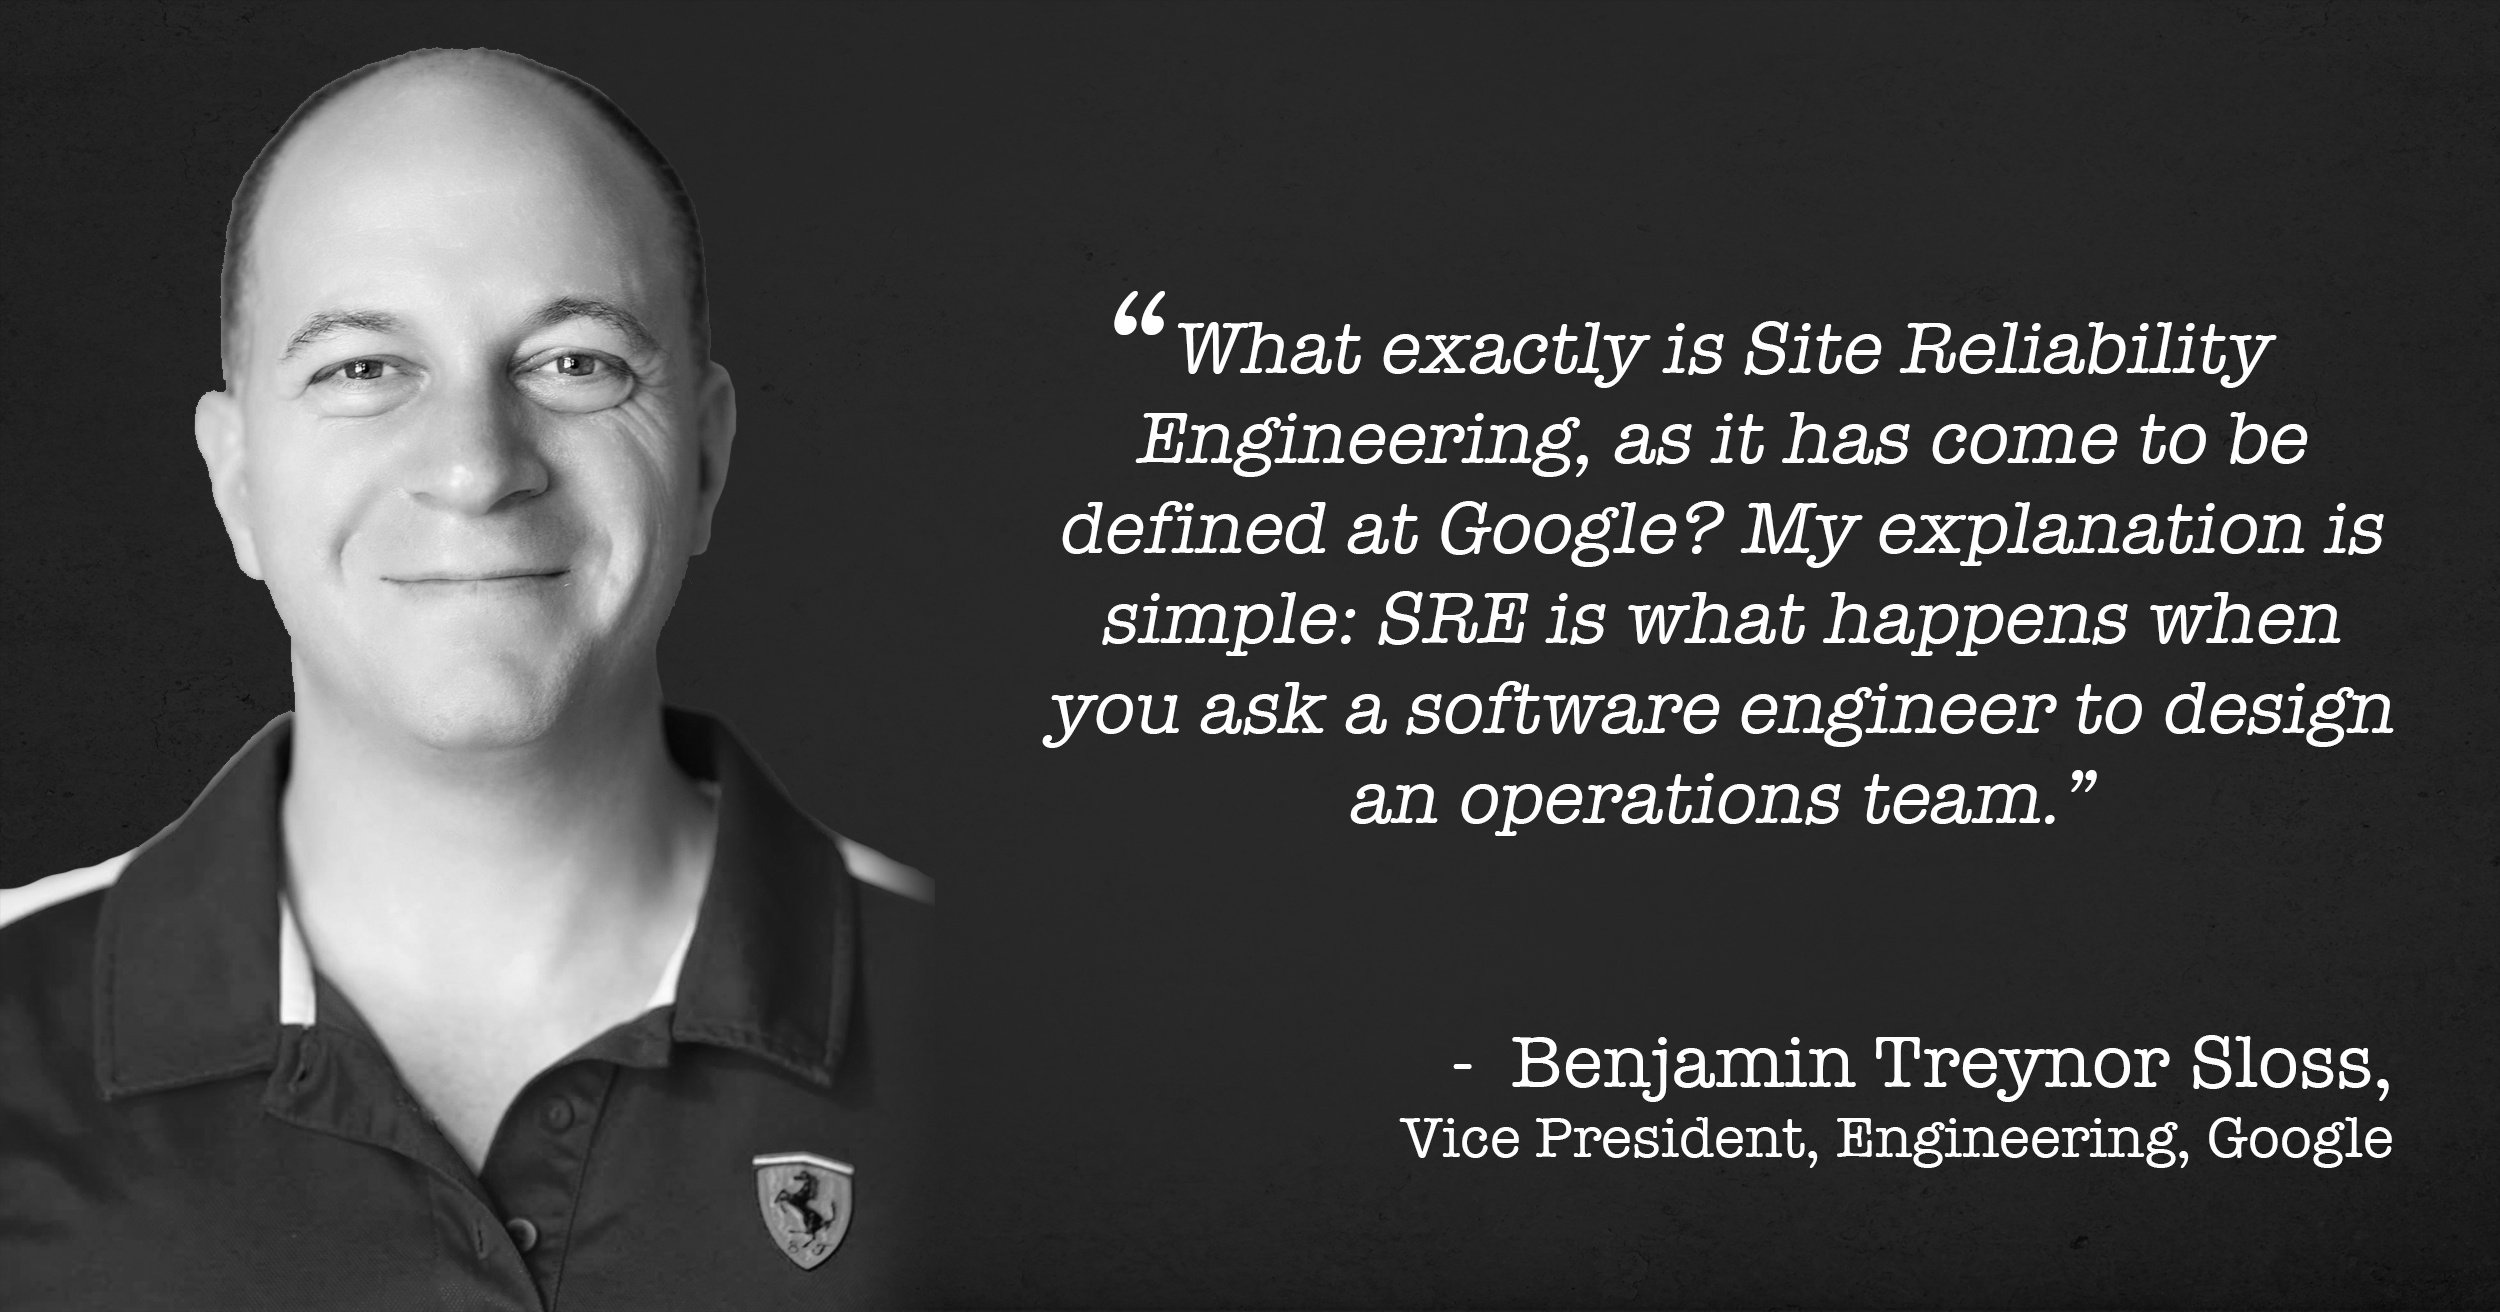 Ben Treynor on Site Reliability Engineering